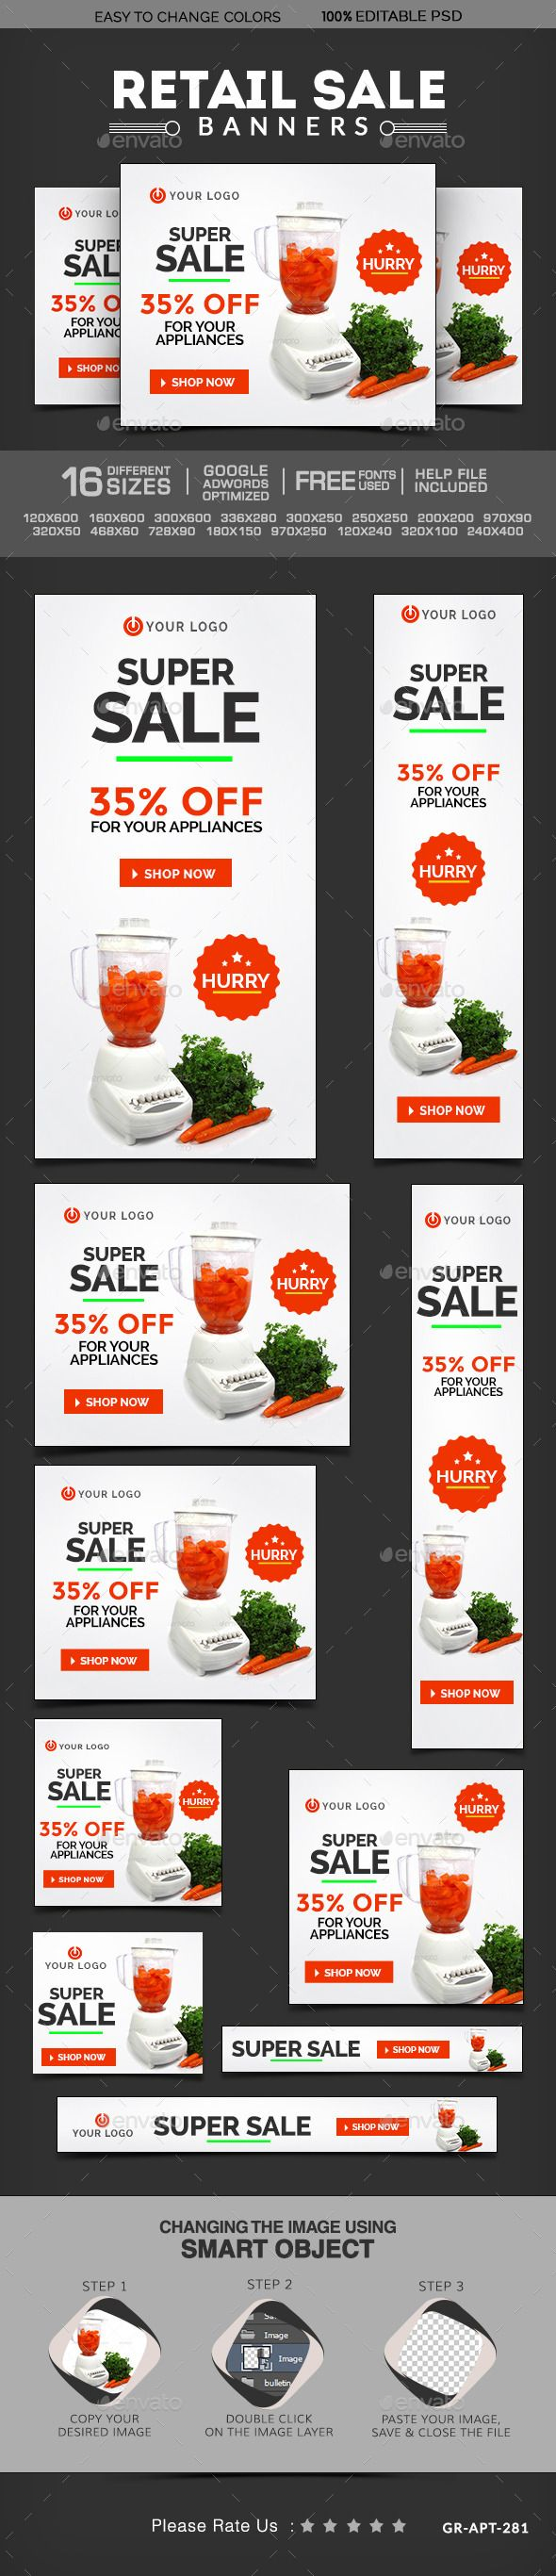 Retail Sale Banners Template PSD | Buy and Download: http://graphicriver.net/item/retail-sale-banners/9982699?ref=ksioks